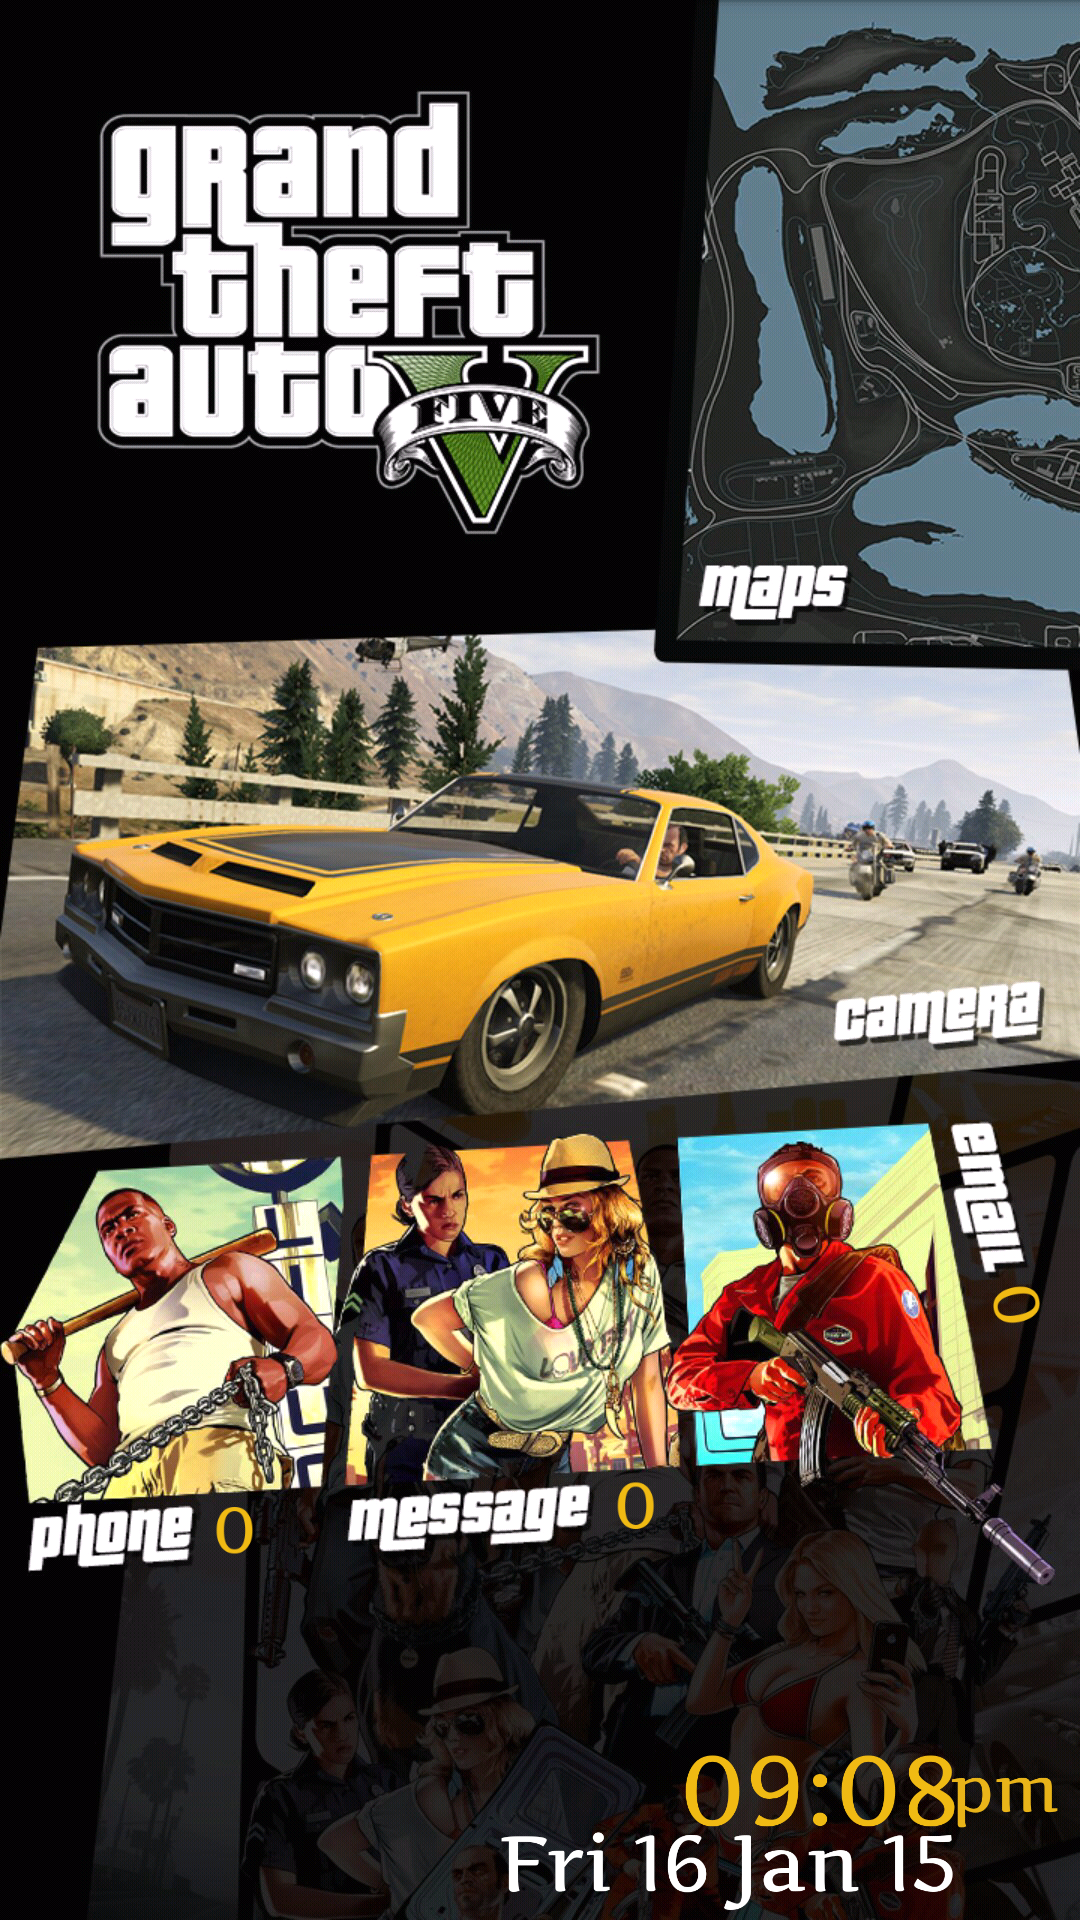 Google chrome theme gta v - A Couple Weeks Before The New Grand Theft Auto V Came Out I Was Super Excited And Found This Beauty